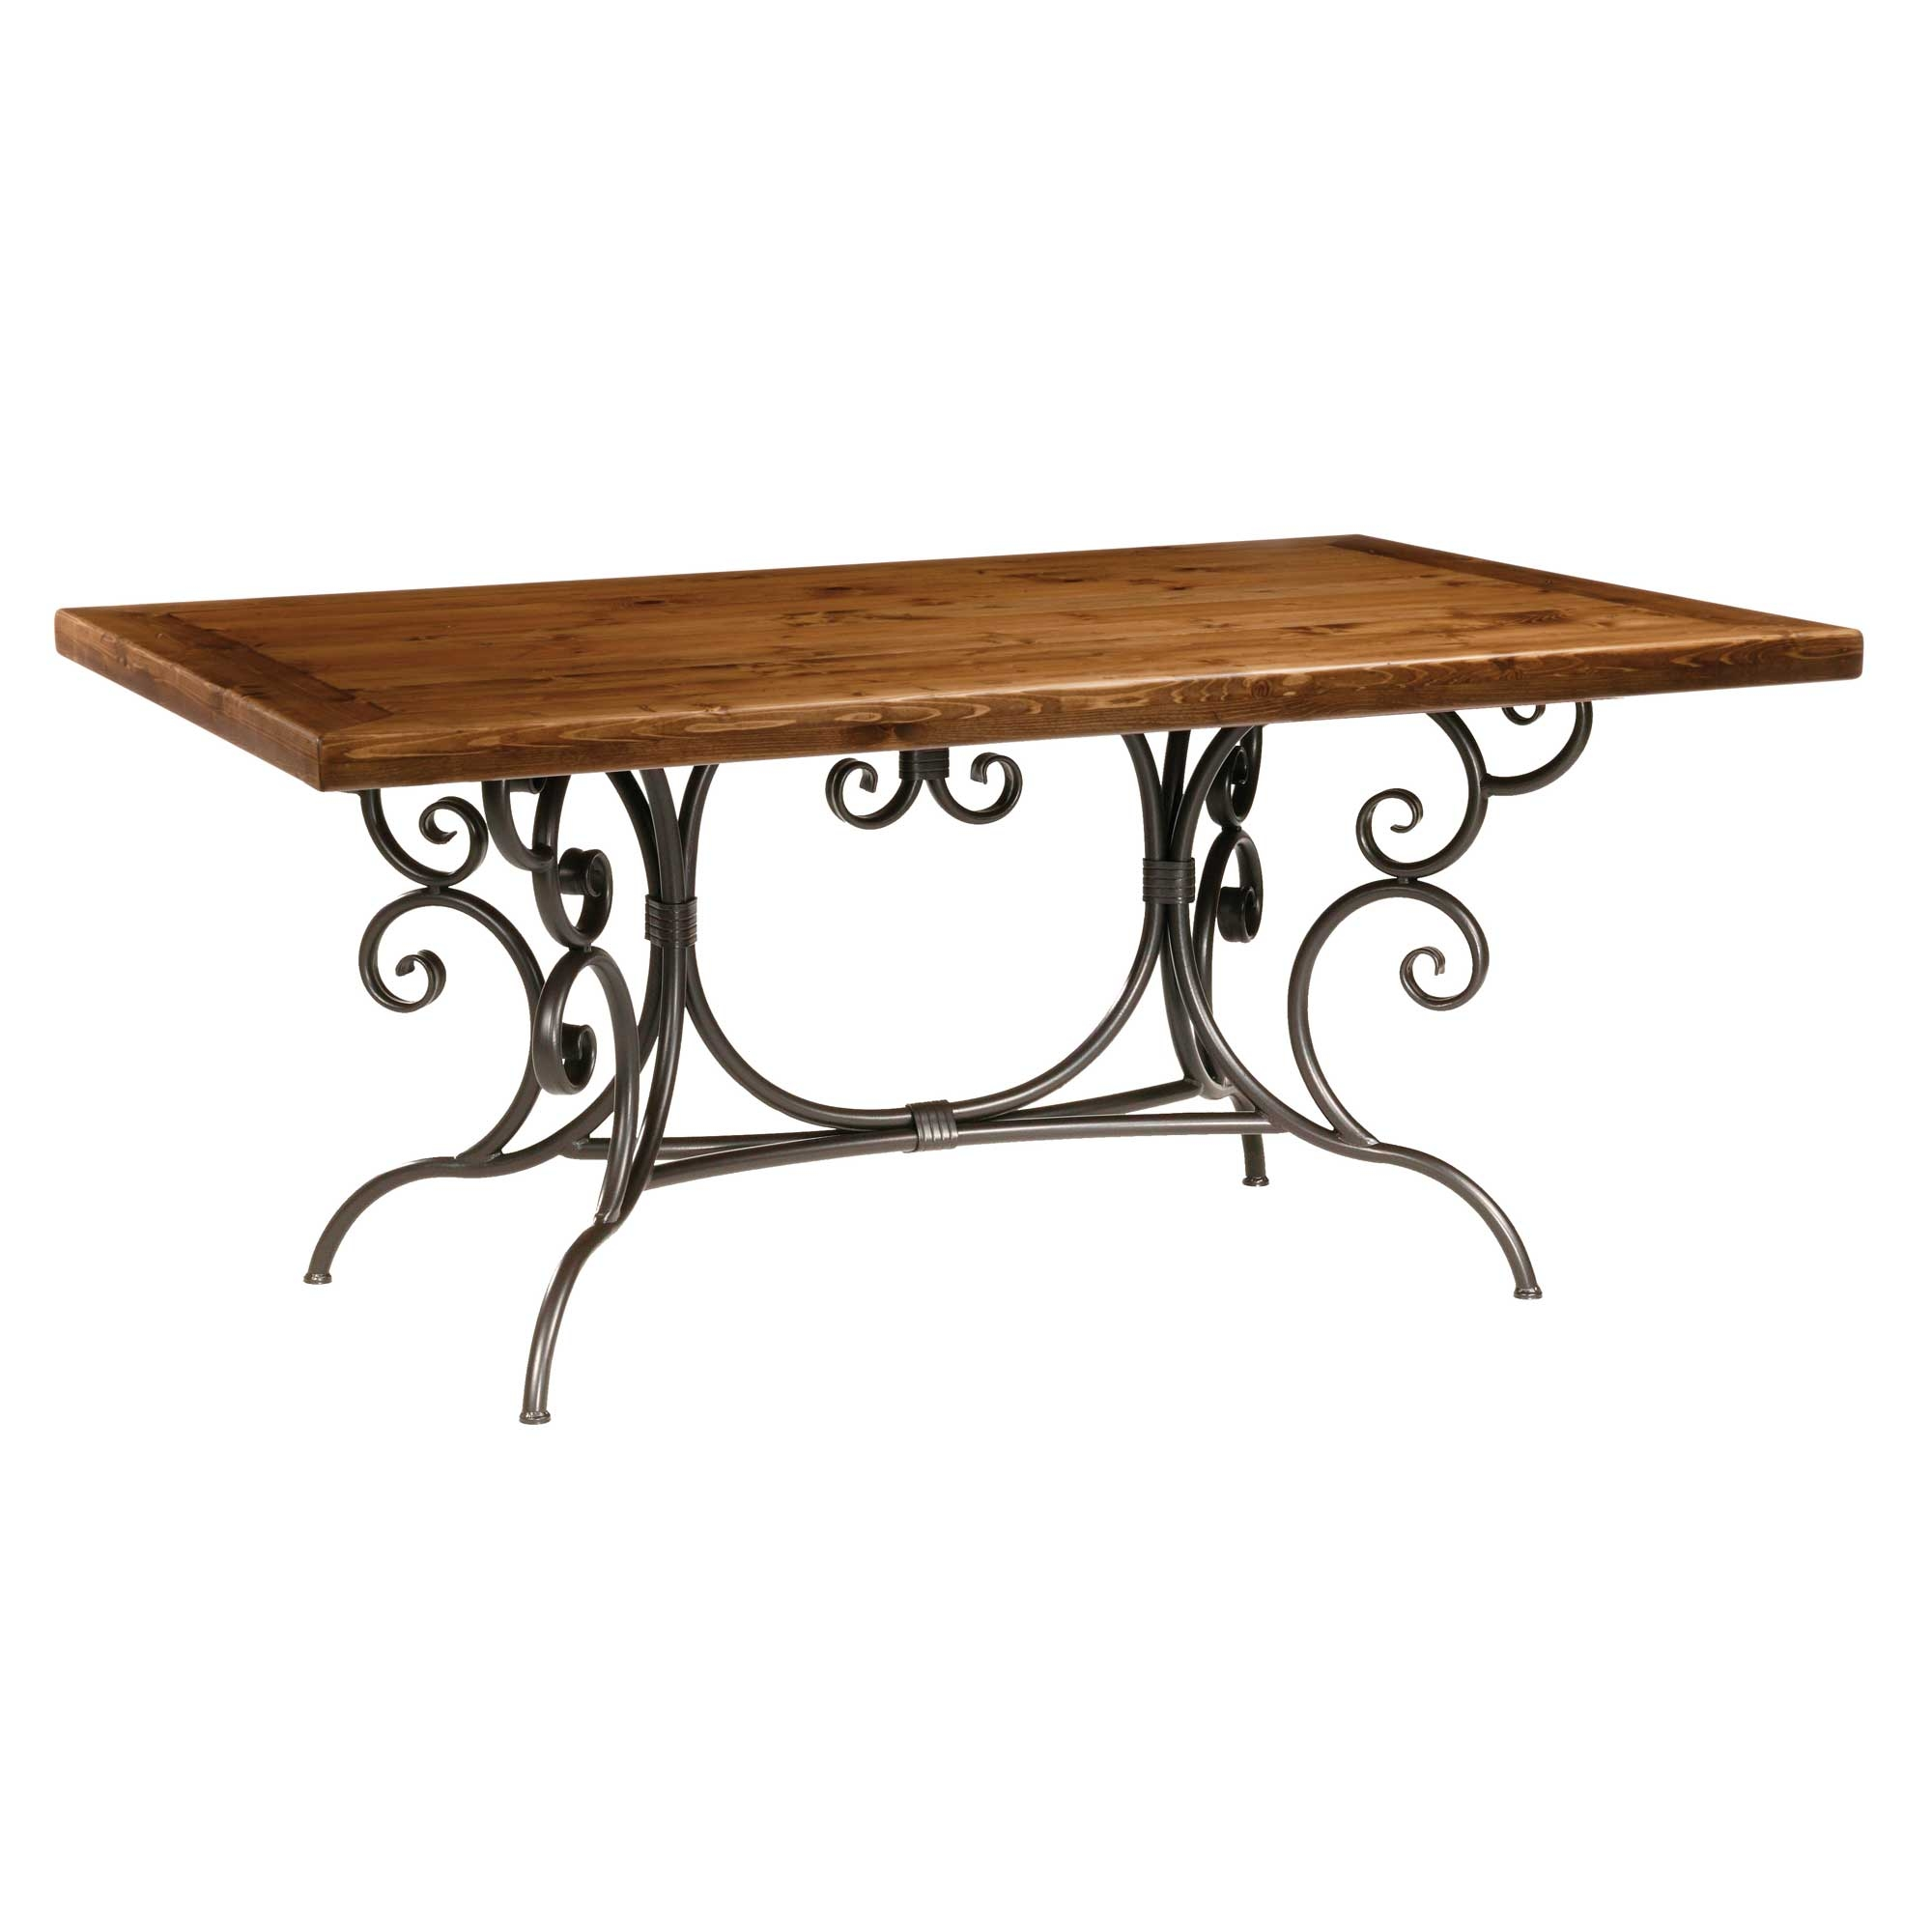 Waterbury Dining Table : waterbury dining table 901124 2 from www.timelesswroughtiron.com size 2000 x 2000 jpeg 349kB